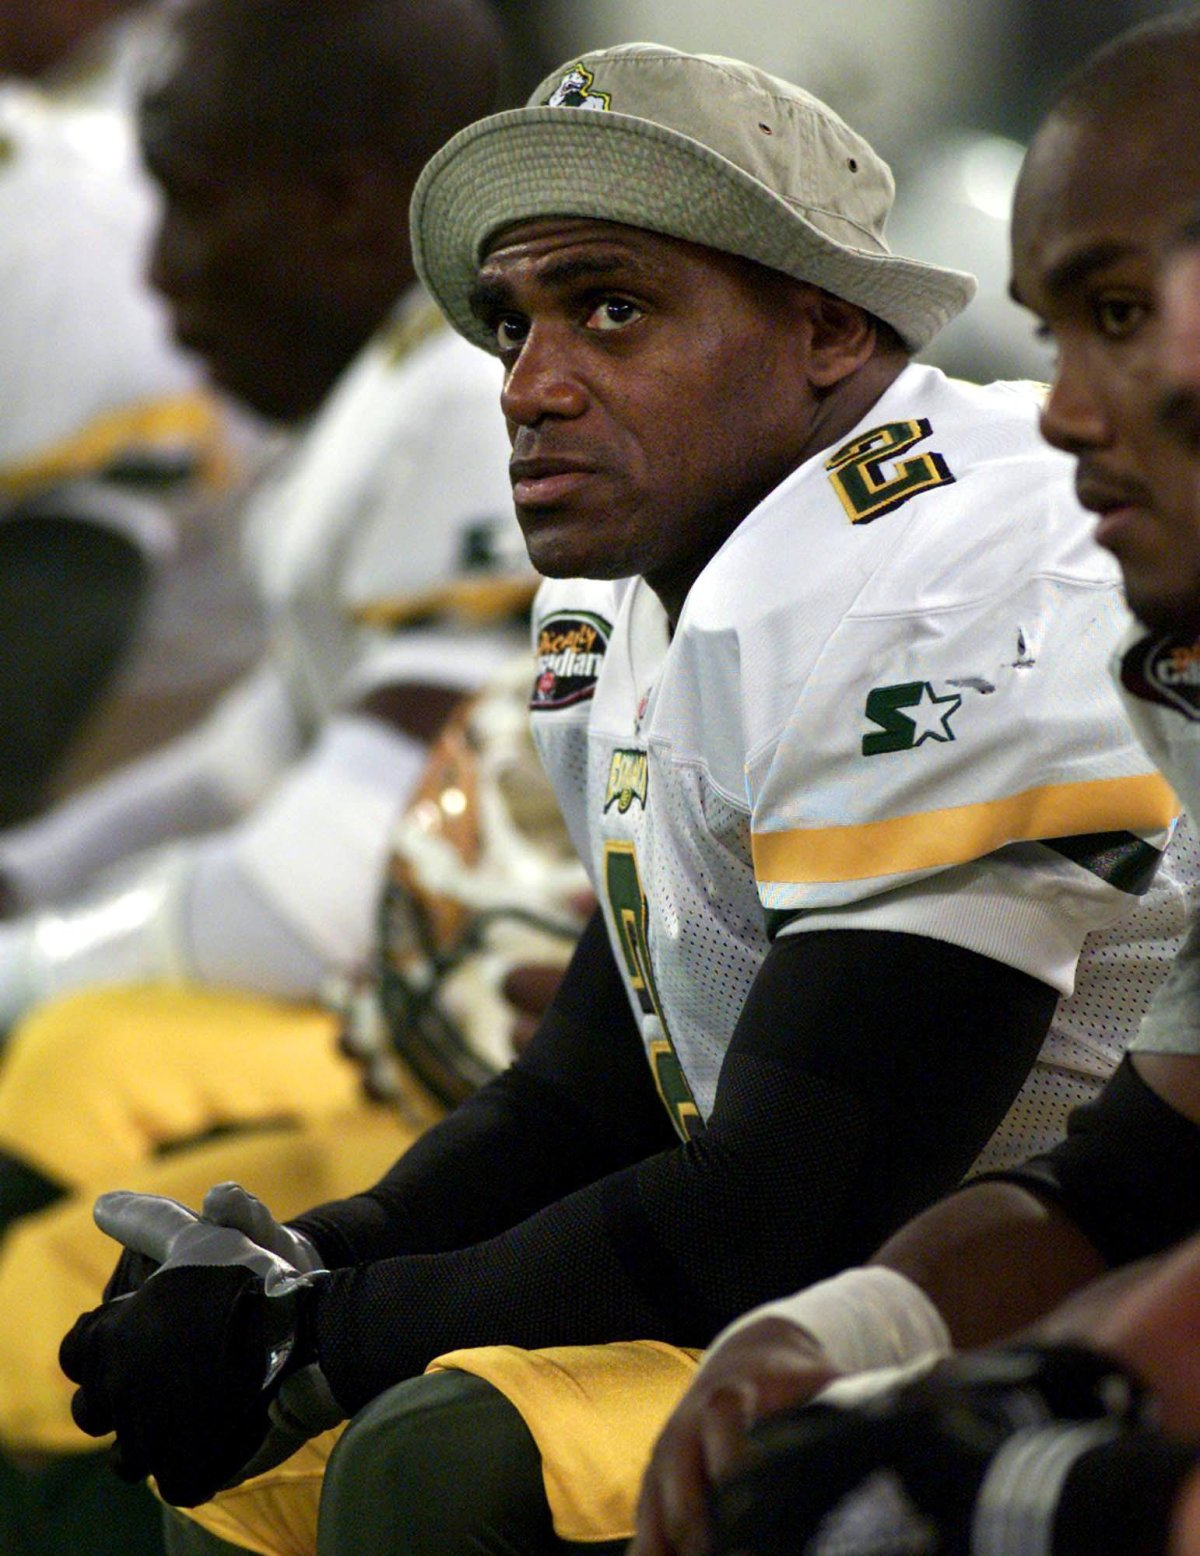 Edmonton Eskimos' Henry (Gizmo) Williams sits on the bench during the final minutes of the fourth quarter of CFL action against the Toronto Argonauts in Toronto Saturday Nov.  6, 1999.  (CP PHOTO/Kevin Frayer).